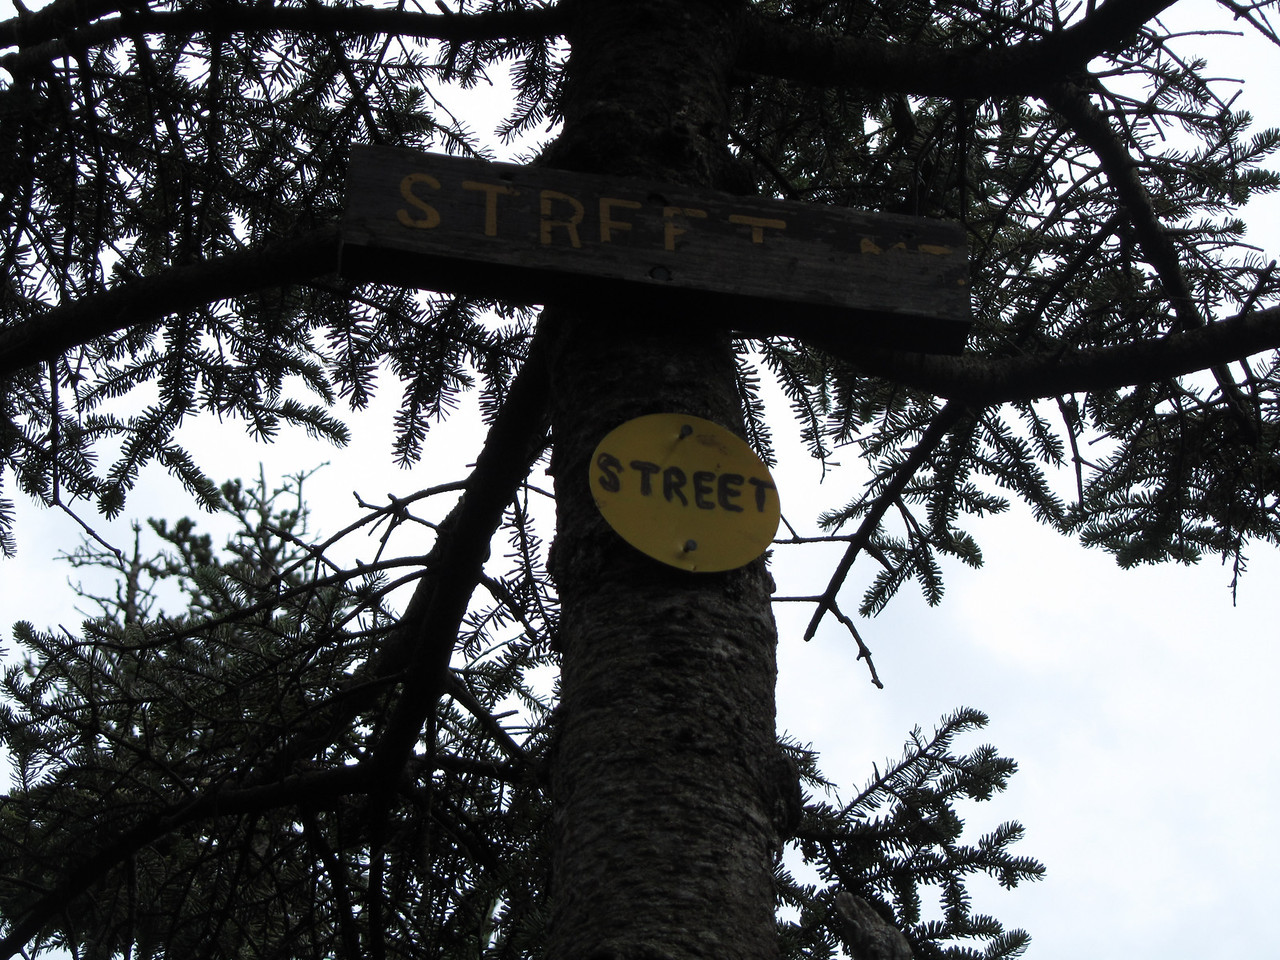 Summit of street. Signs are 10-12 feet up a tree so that winter snowshoers can see them with 8-10 feet of snow.